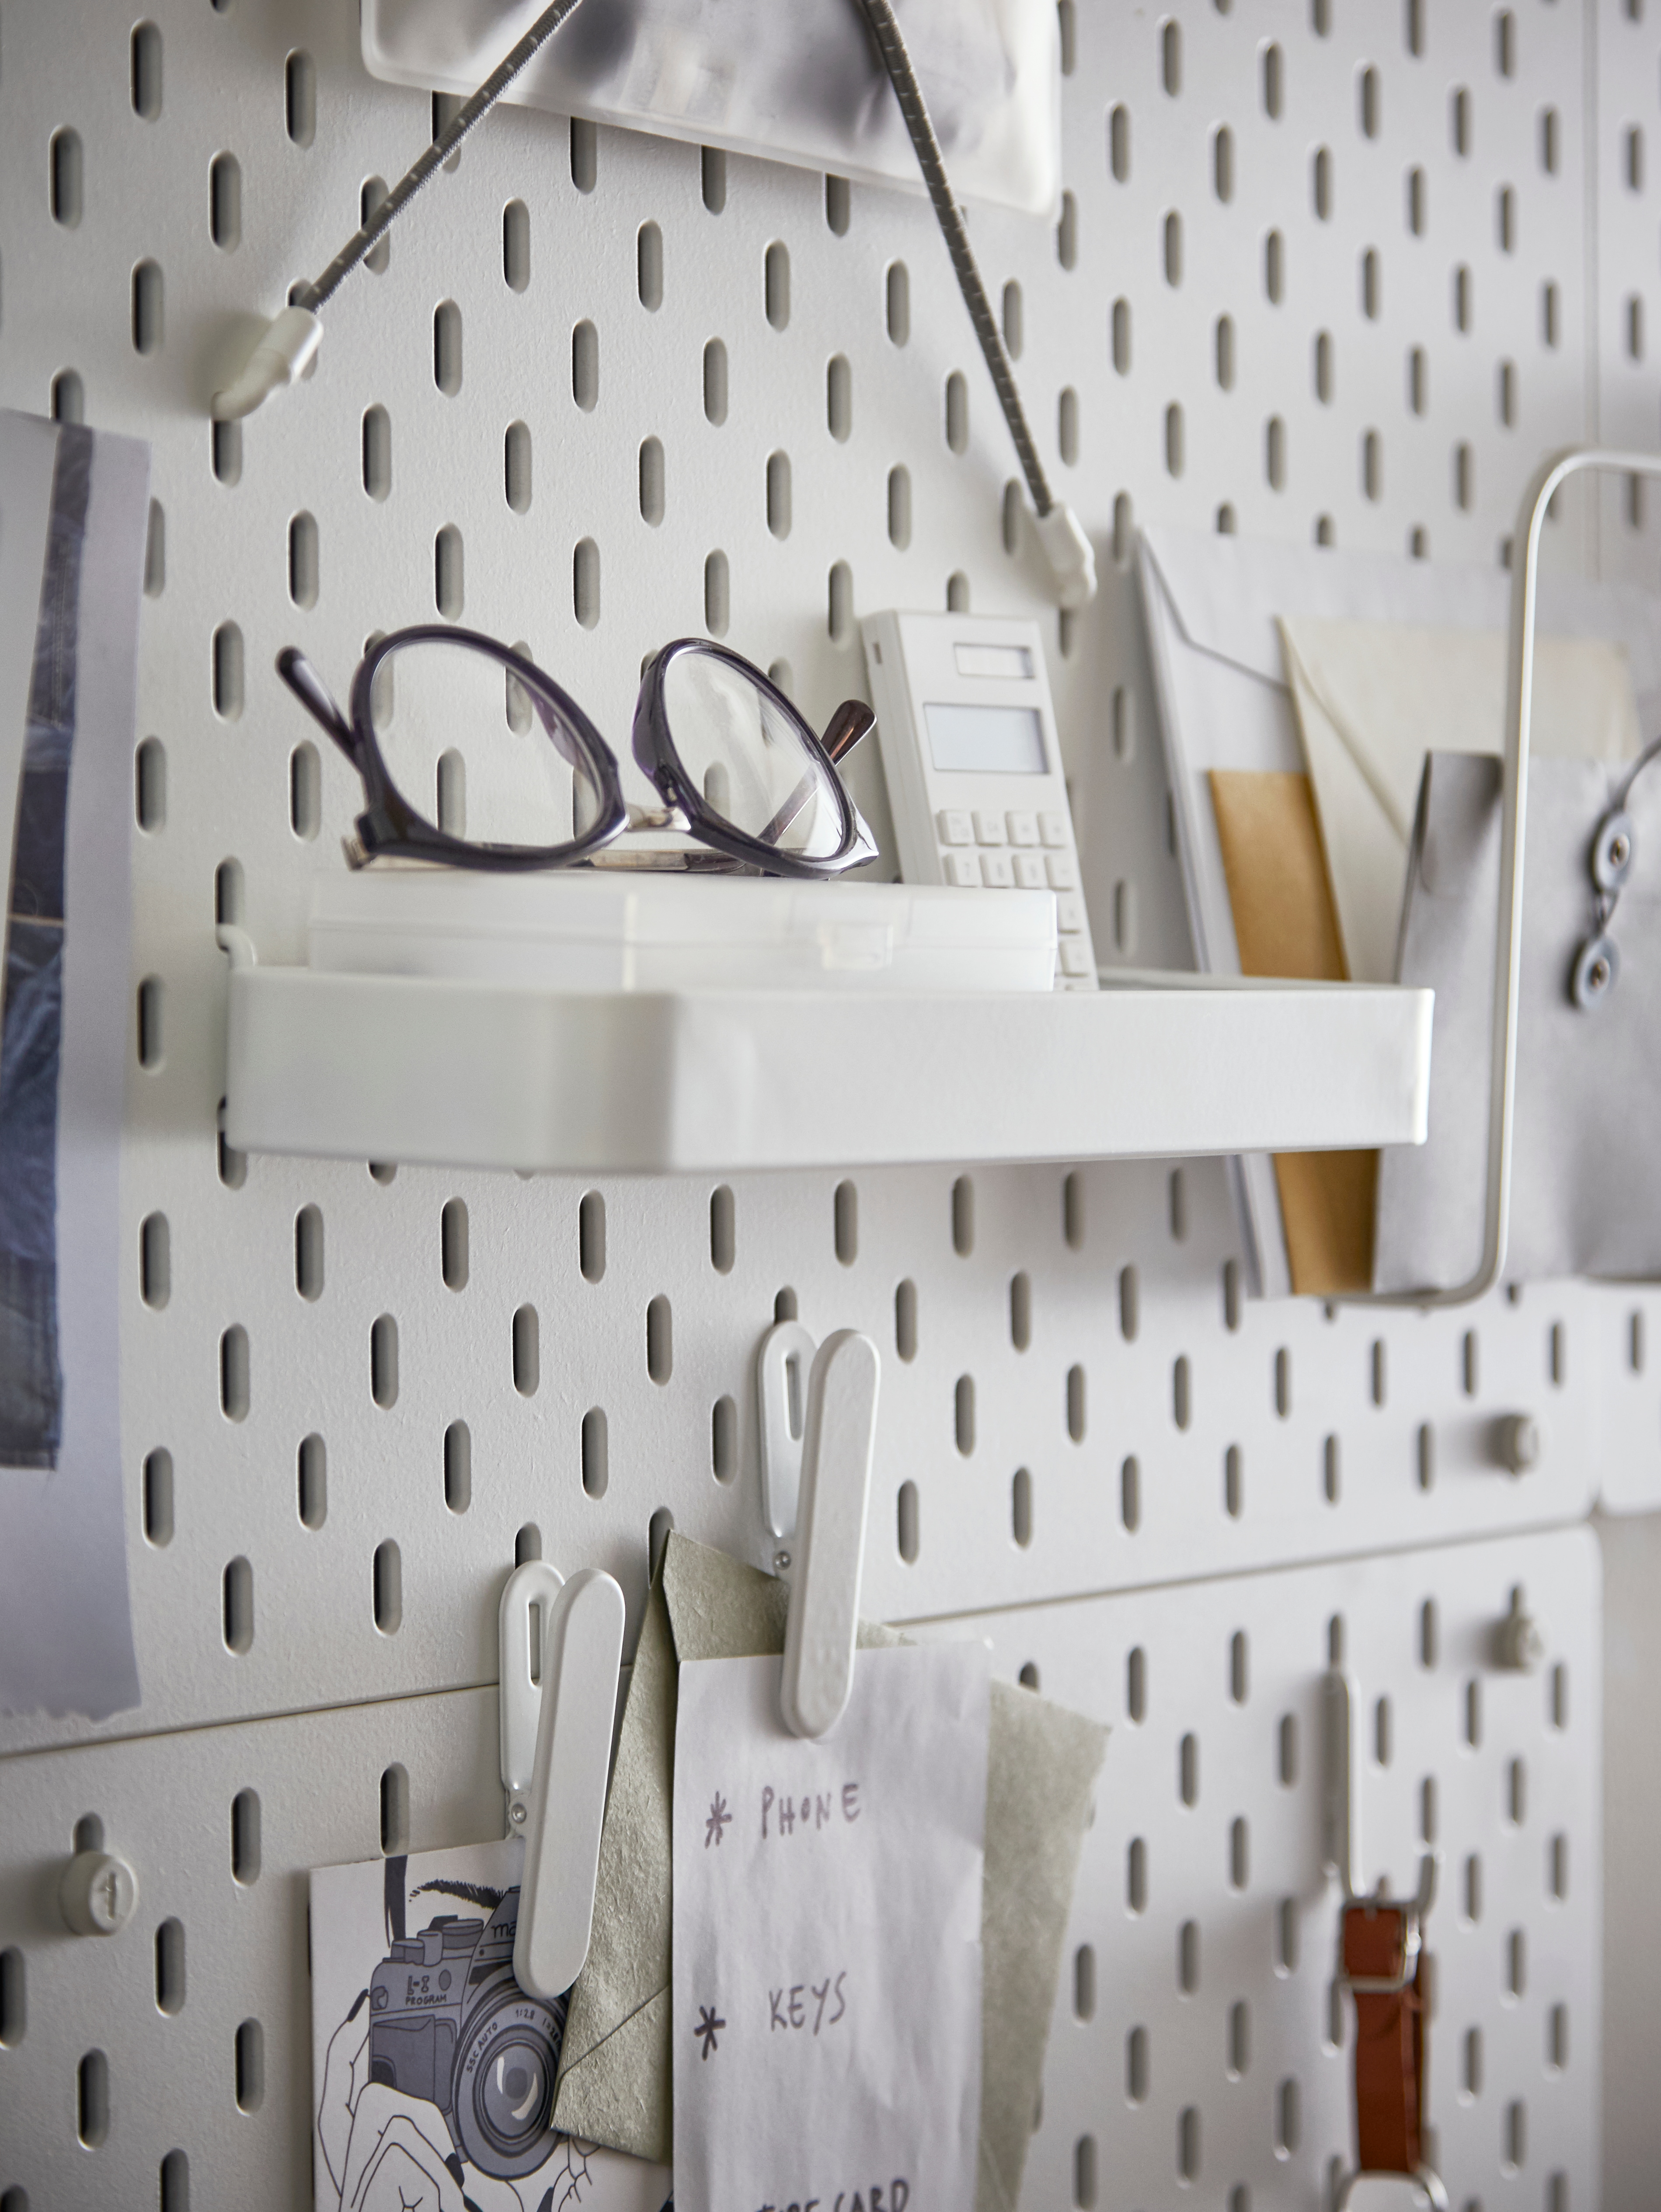 Workspace with white pegboard, white paper clips with notes, white shelf with reading glasses and calculator, envelopes.